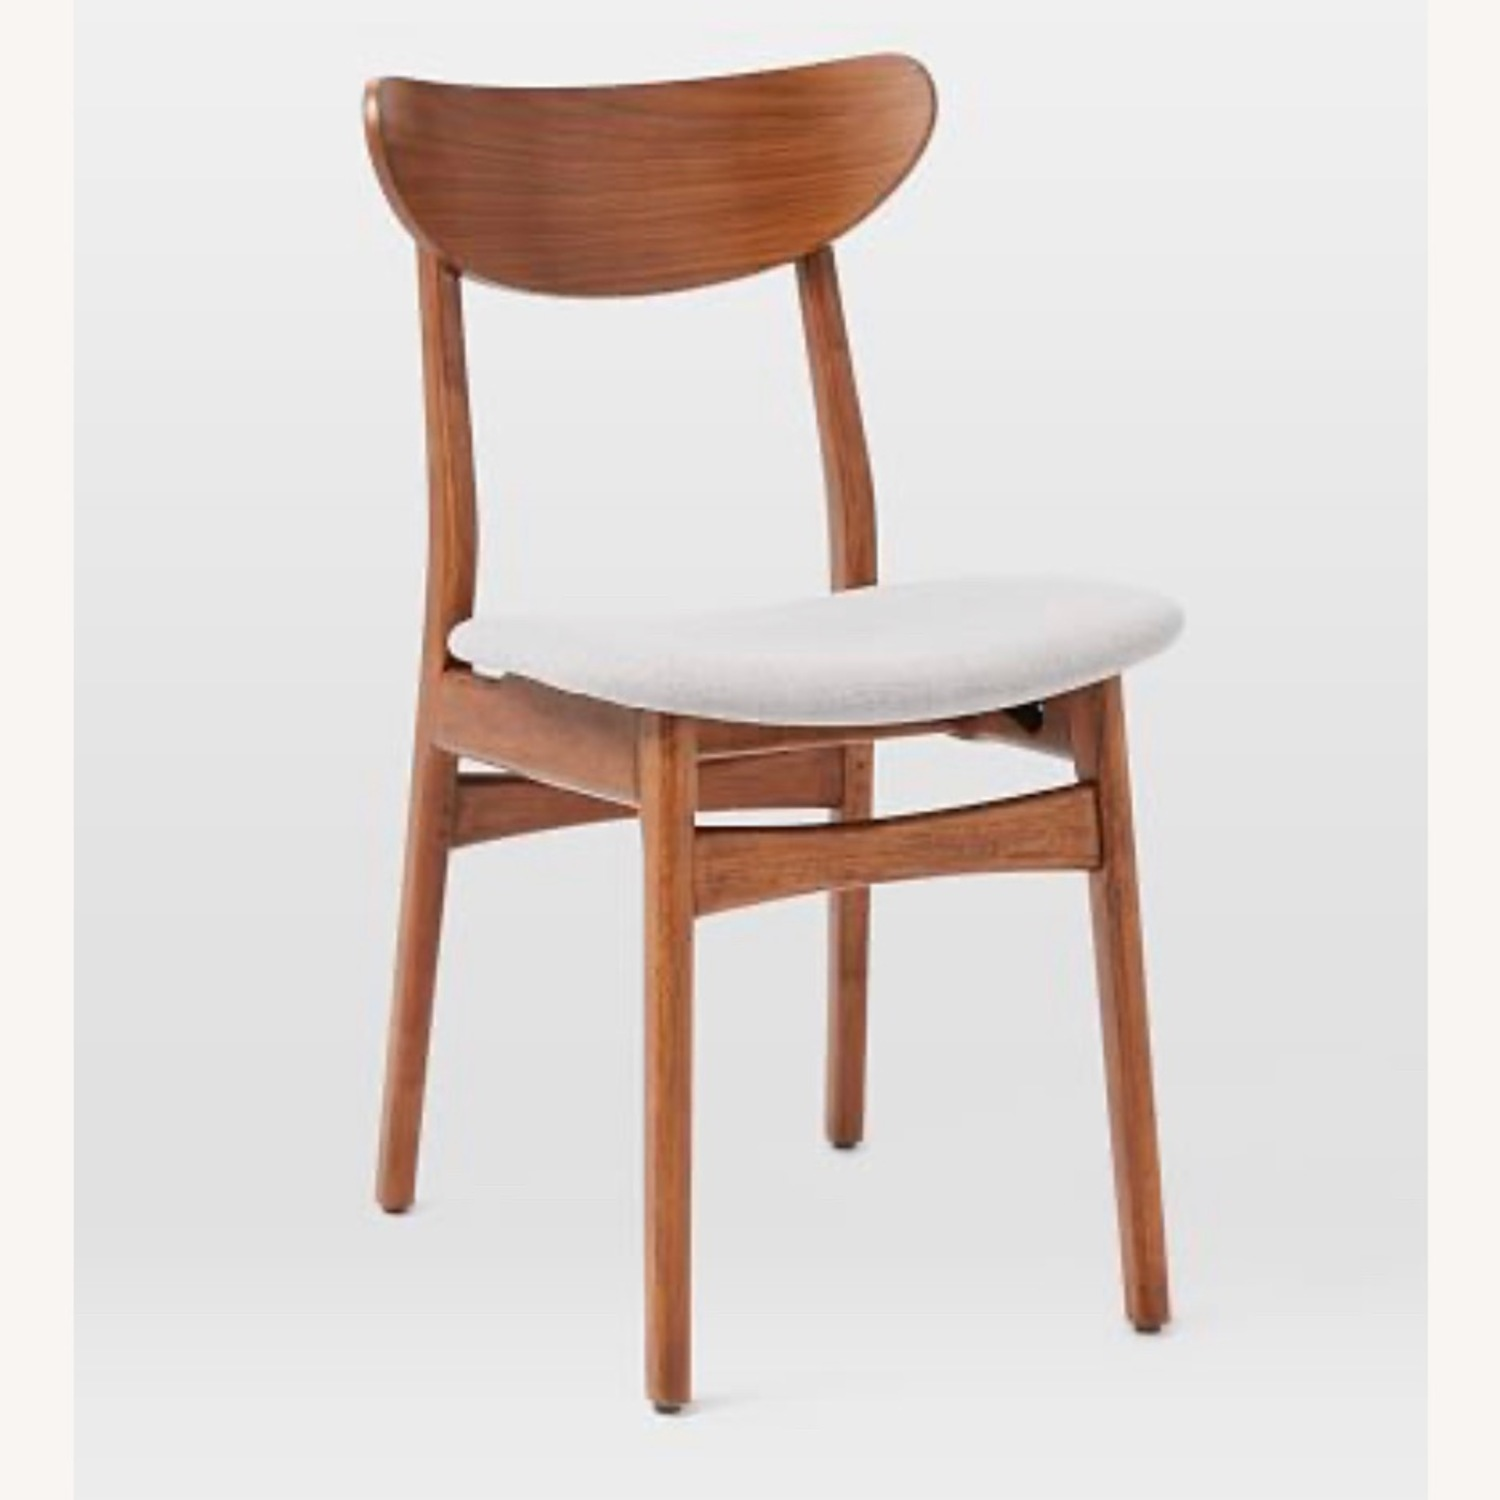 West Elm Classic Cafe Dining Chairs Set of 2 - image-1